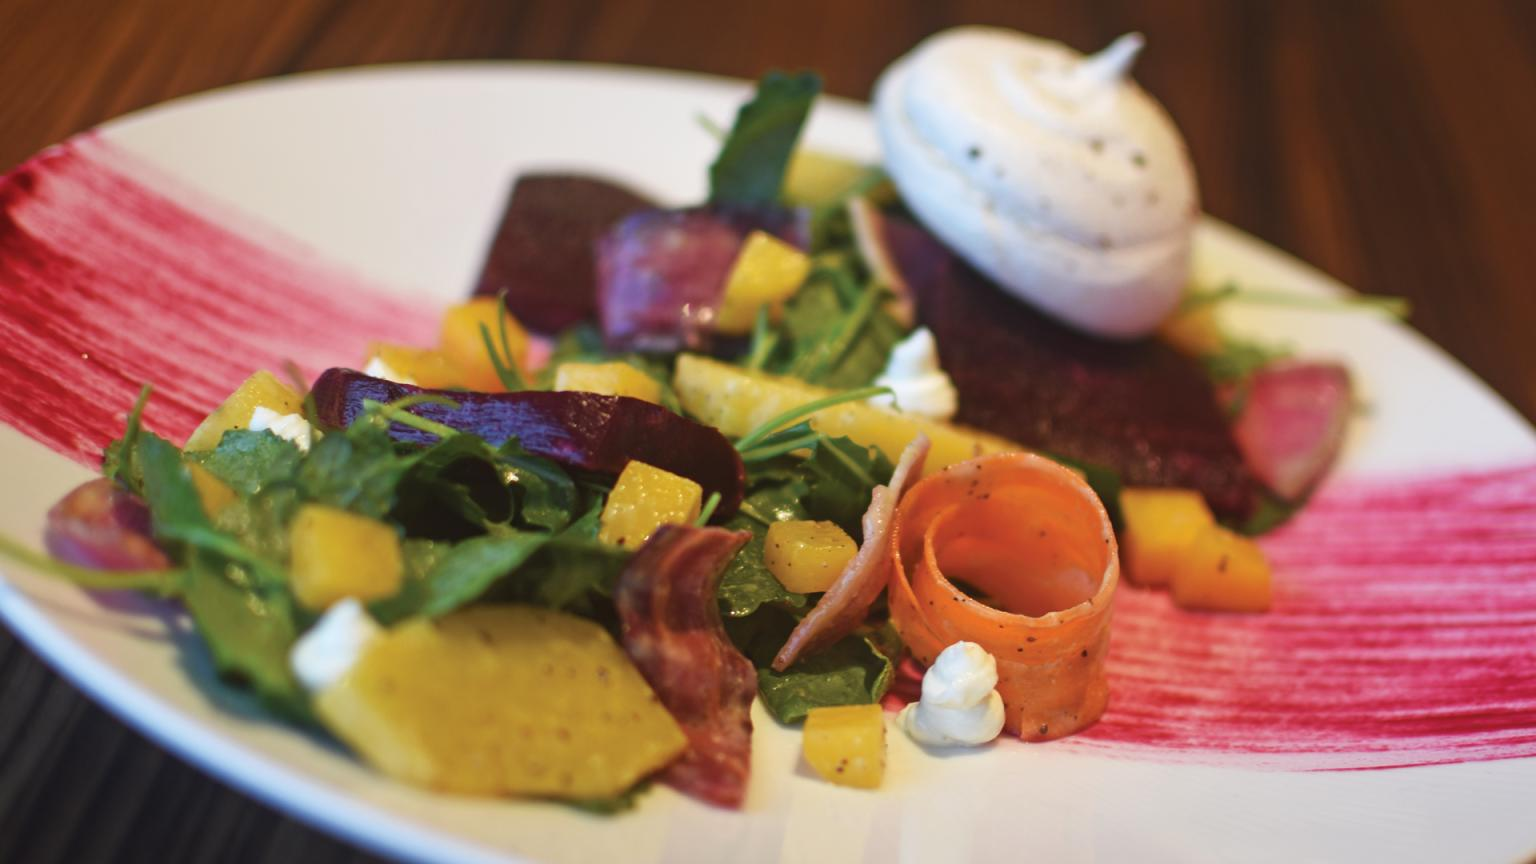 Beet salad created by chefs at Shearwater